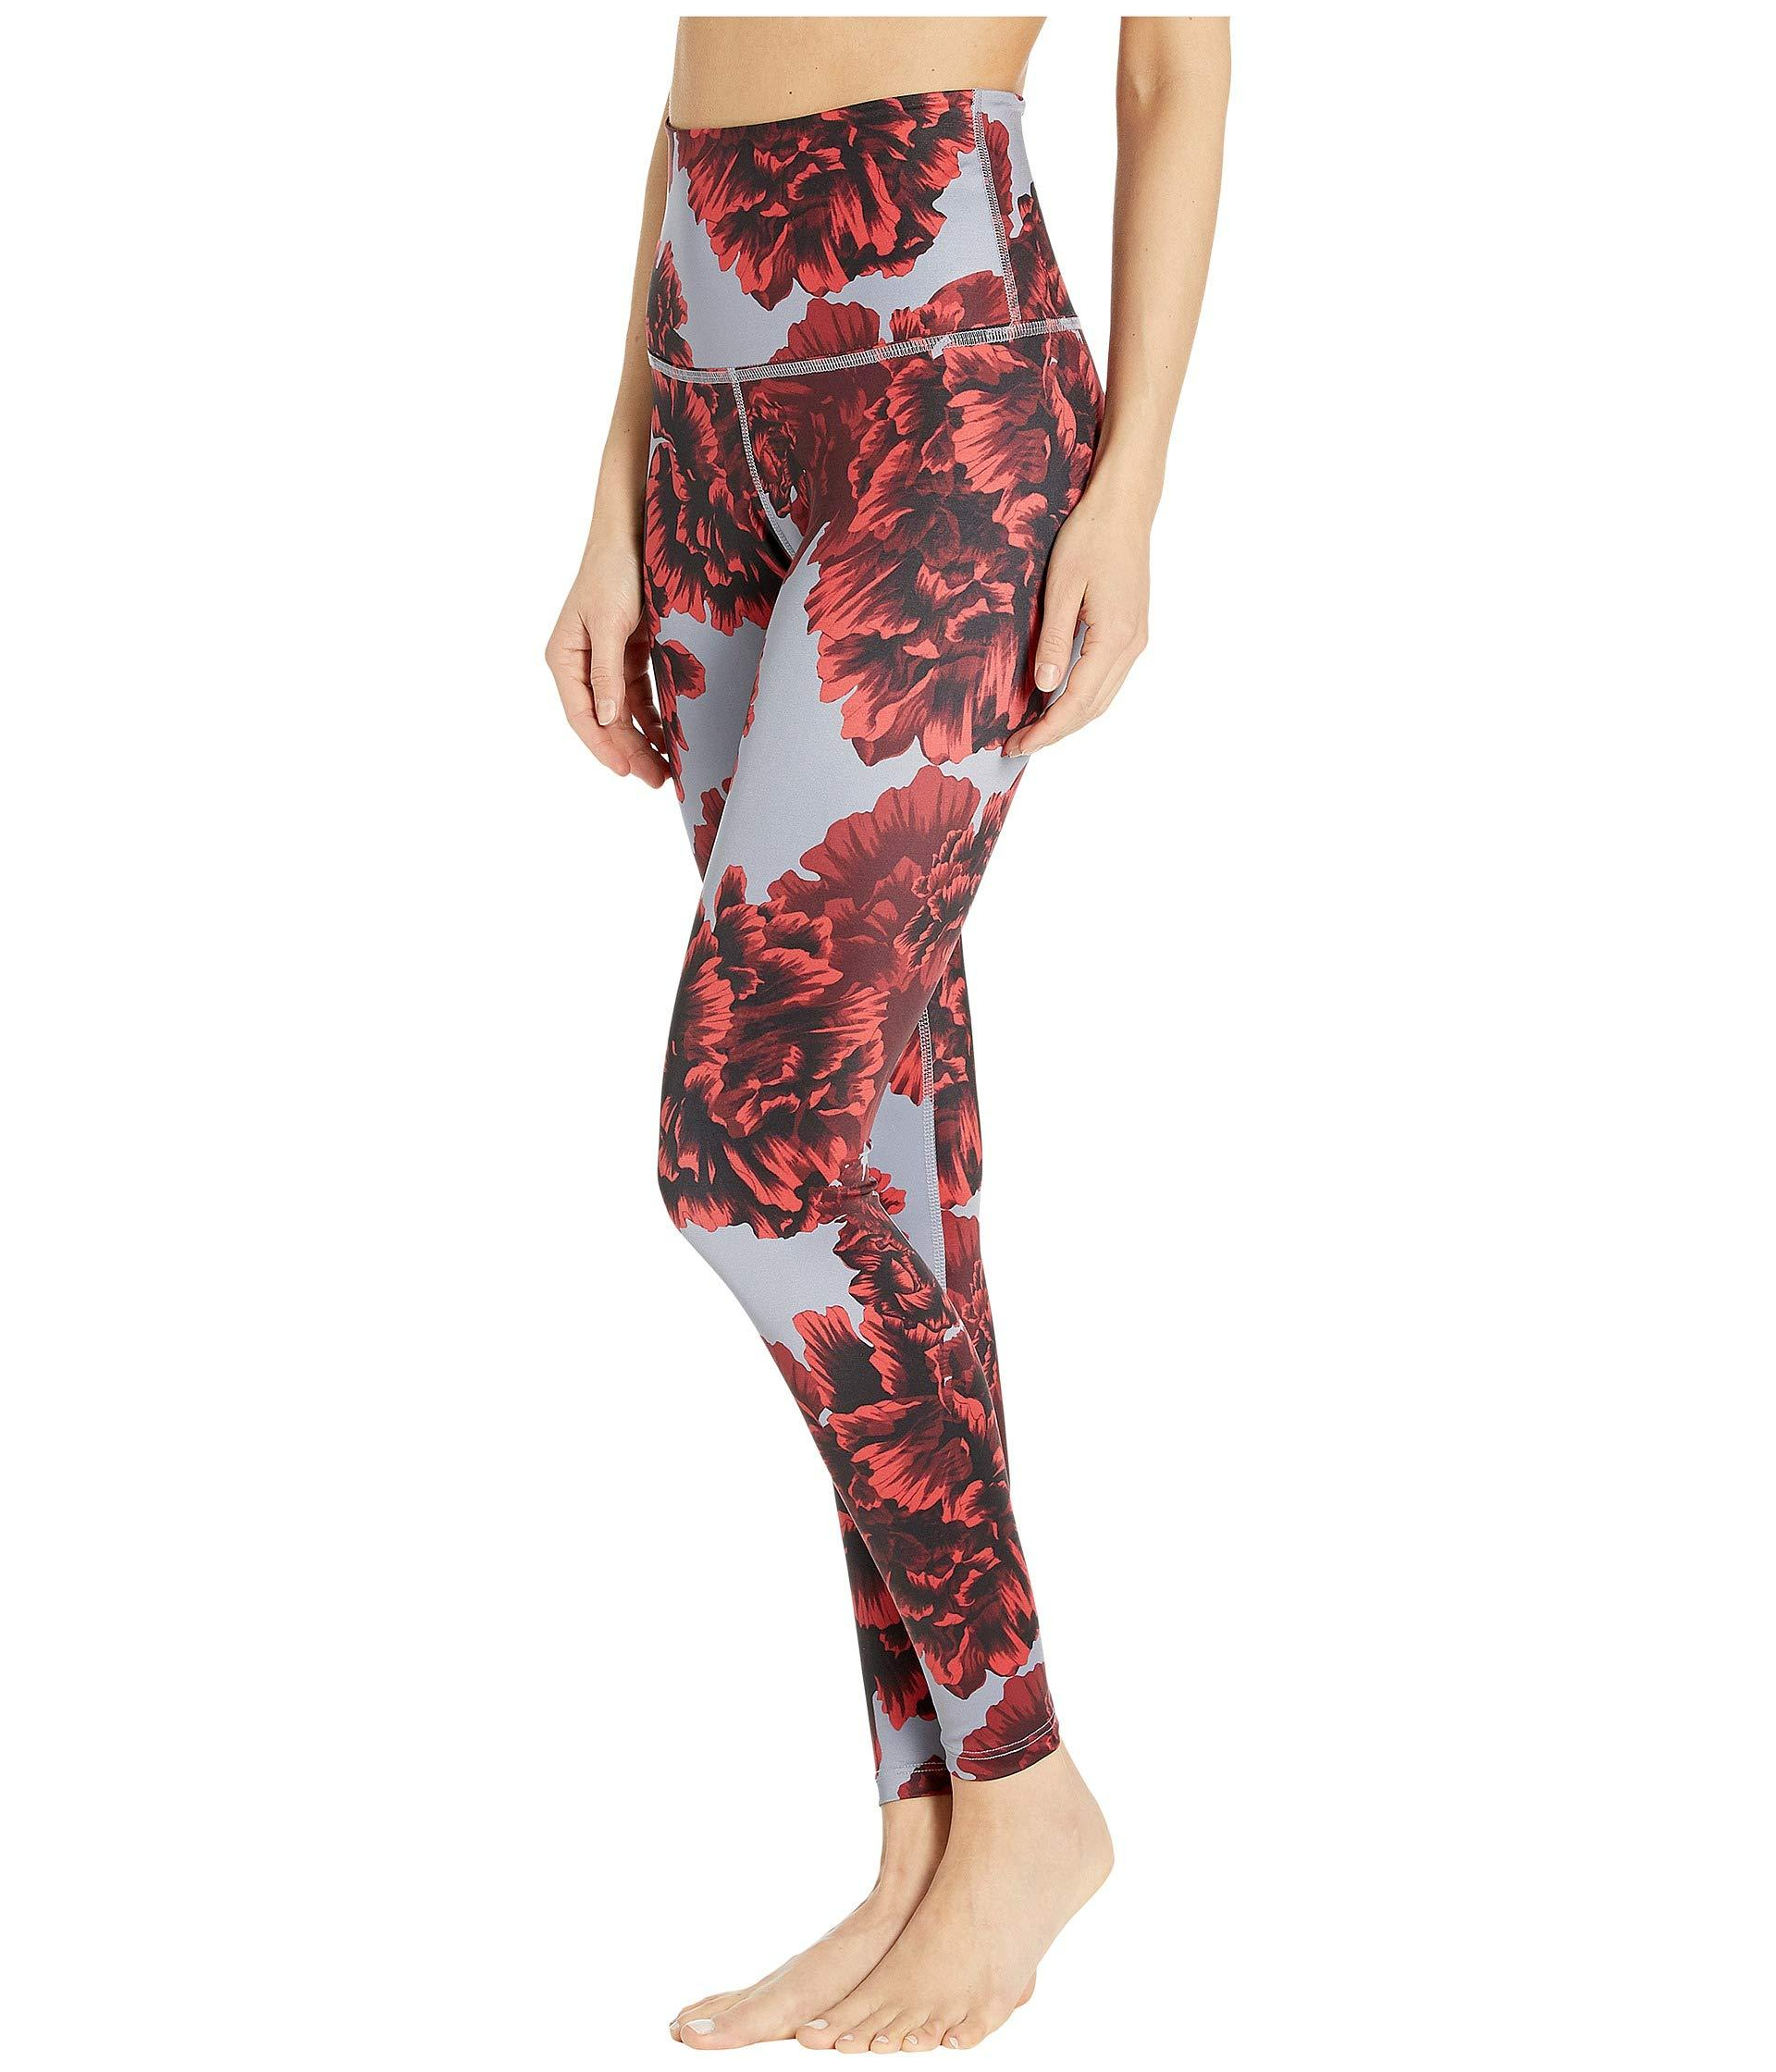 c054bf45576f3 Lyst - Beyond Yoga Lux High Waist Leggings in Red - Save 19%